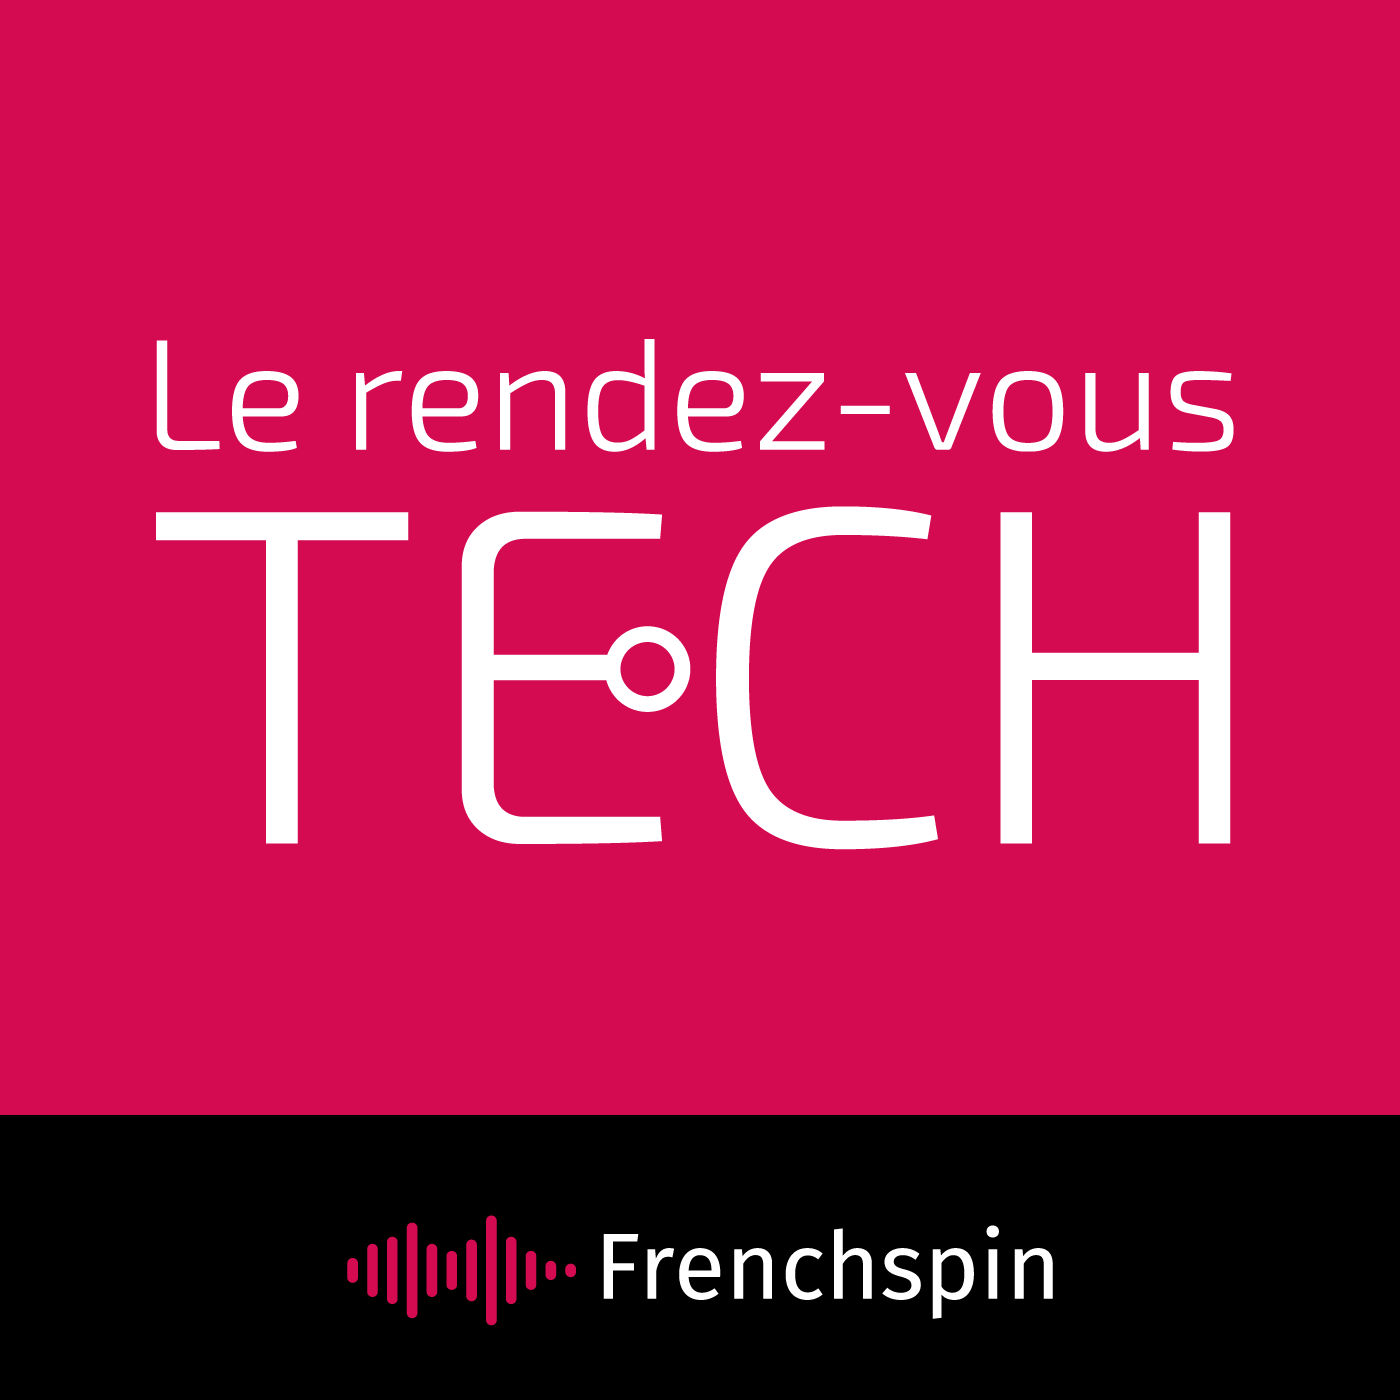 Le rendez-vous Tech | frenchspin